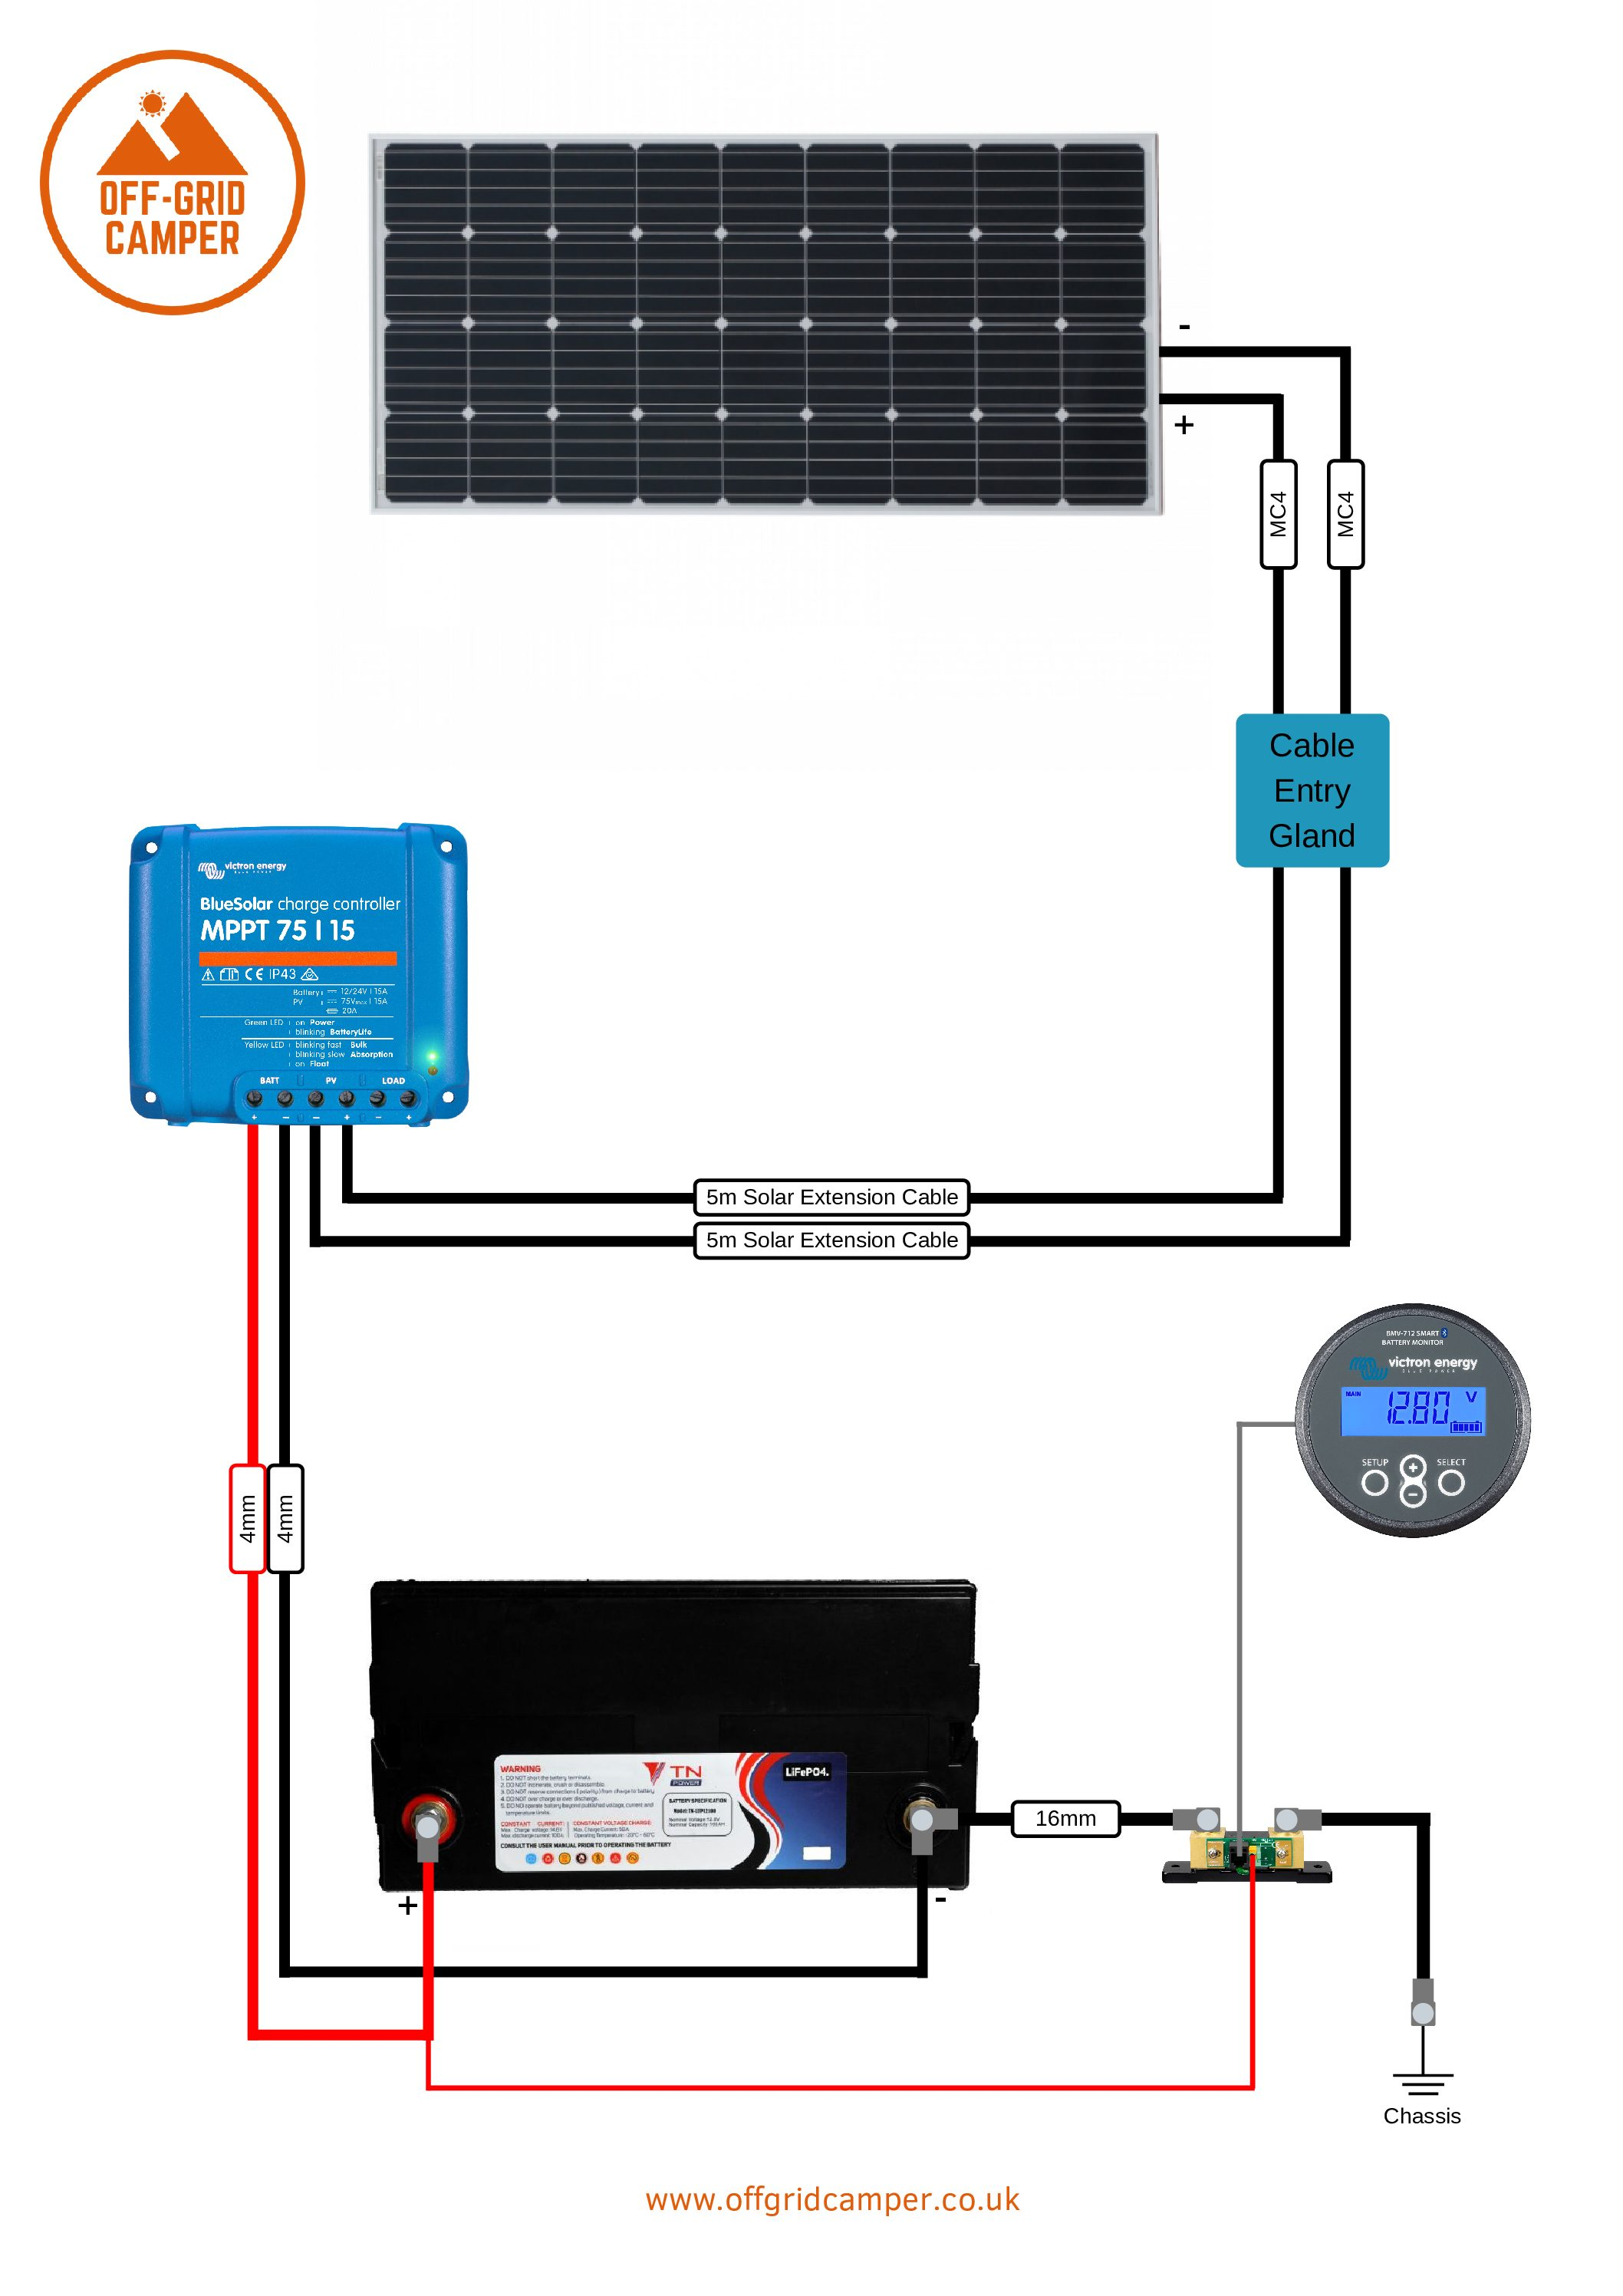 wiring diagram solar panels installation wiring diagram solar install 100w panel with mppt controller with  wiring diagram solar install 100w